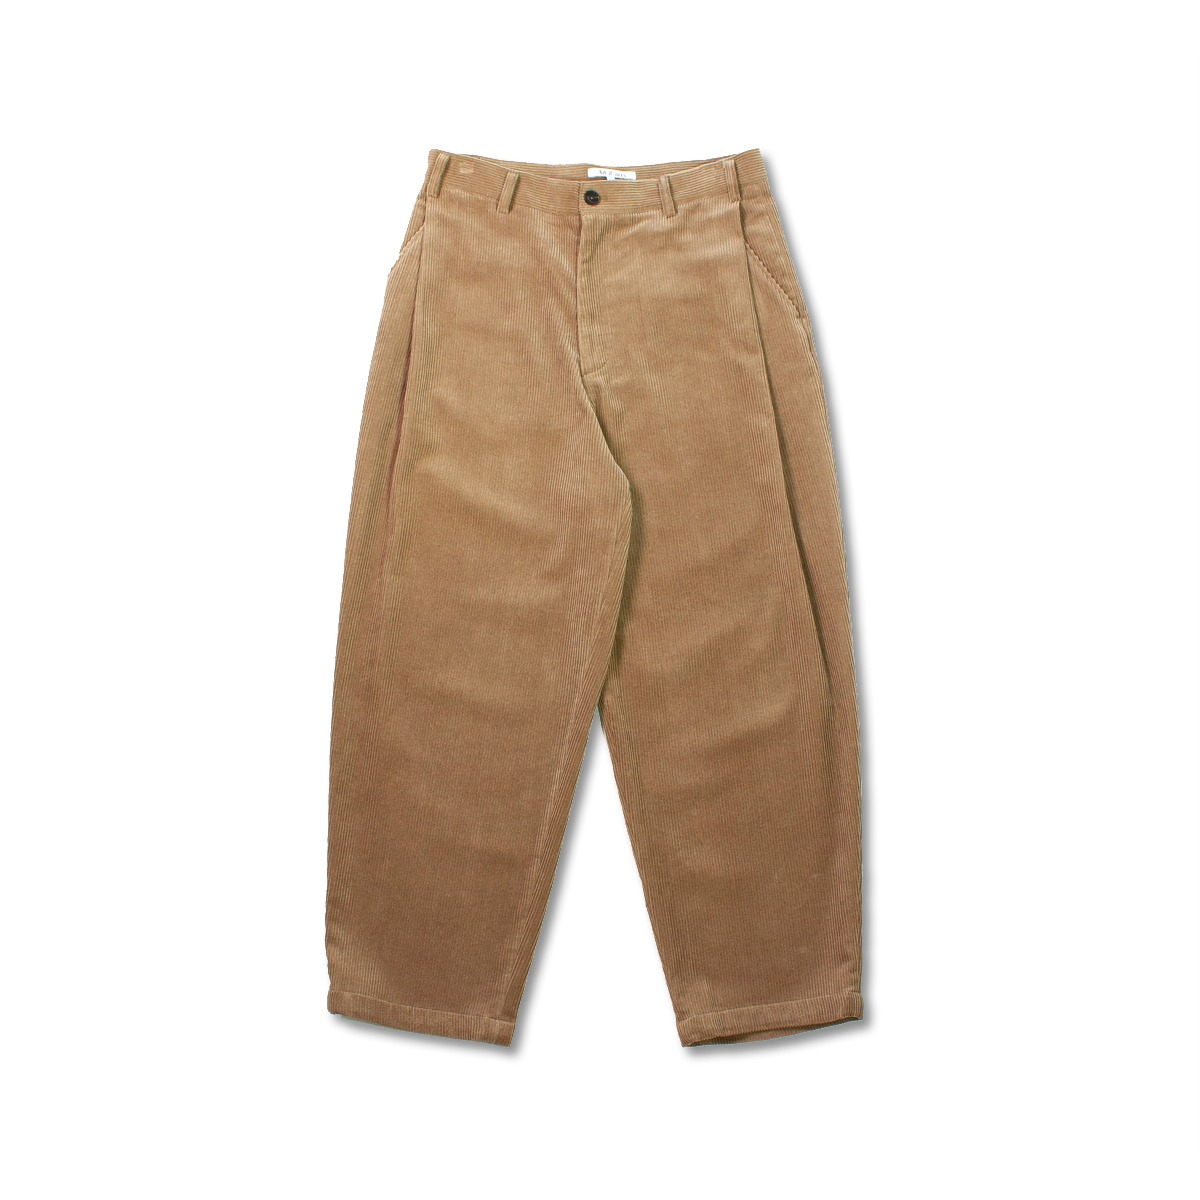 [ART IF ACTS] CORDUROY SIDE TUCKED PANTS 'KHAKI BROWN'